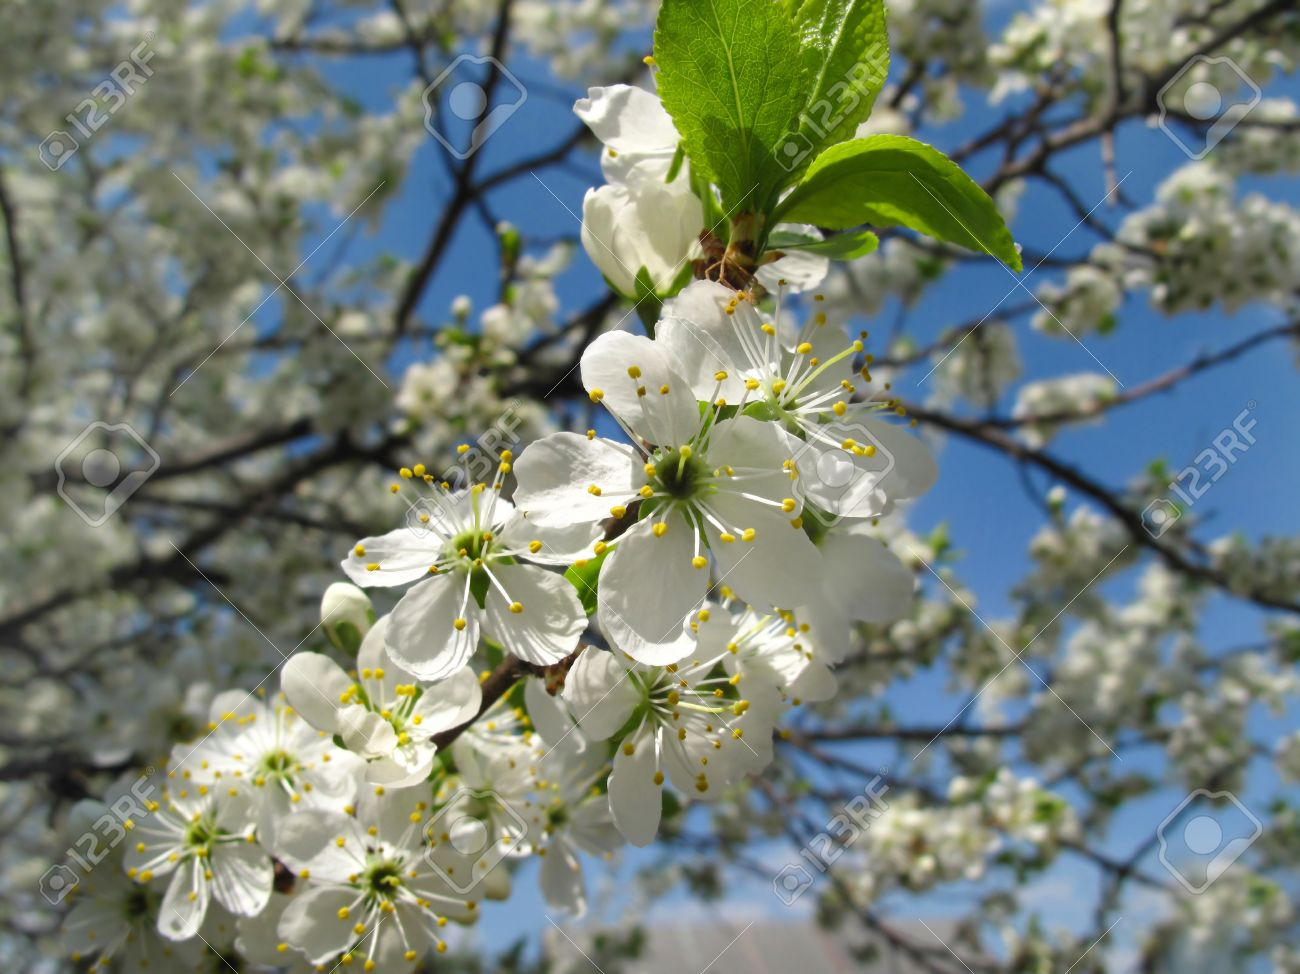 Branch Of A Flowering Fruit Tree With Beautiful White Flowers